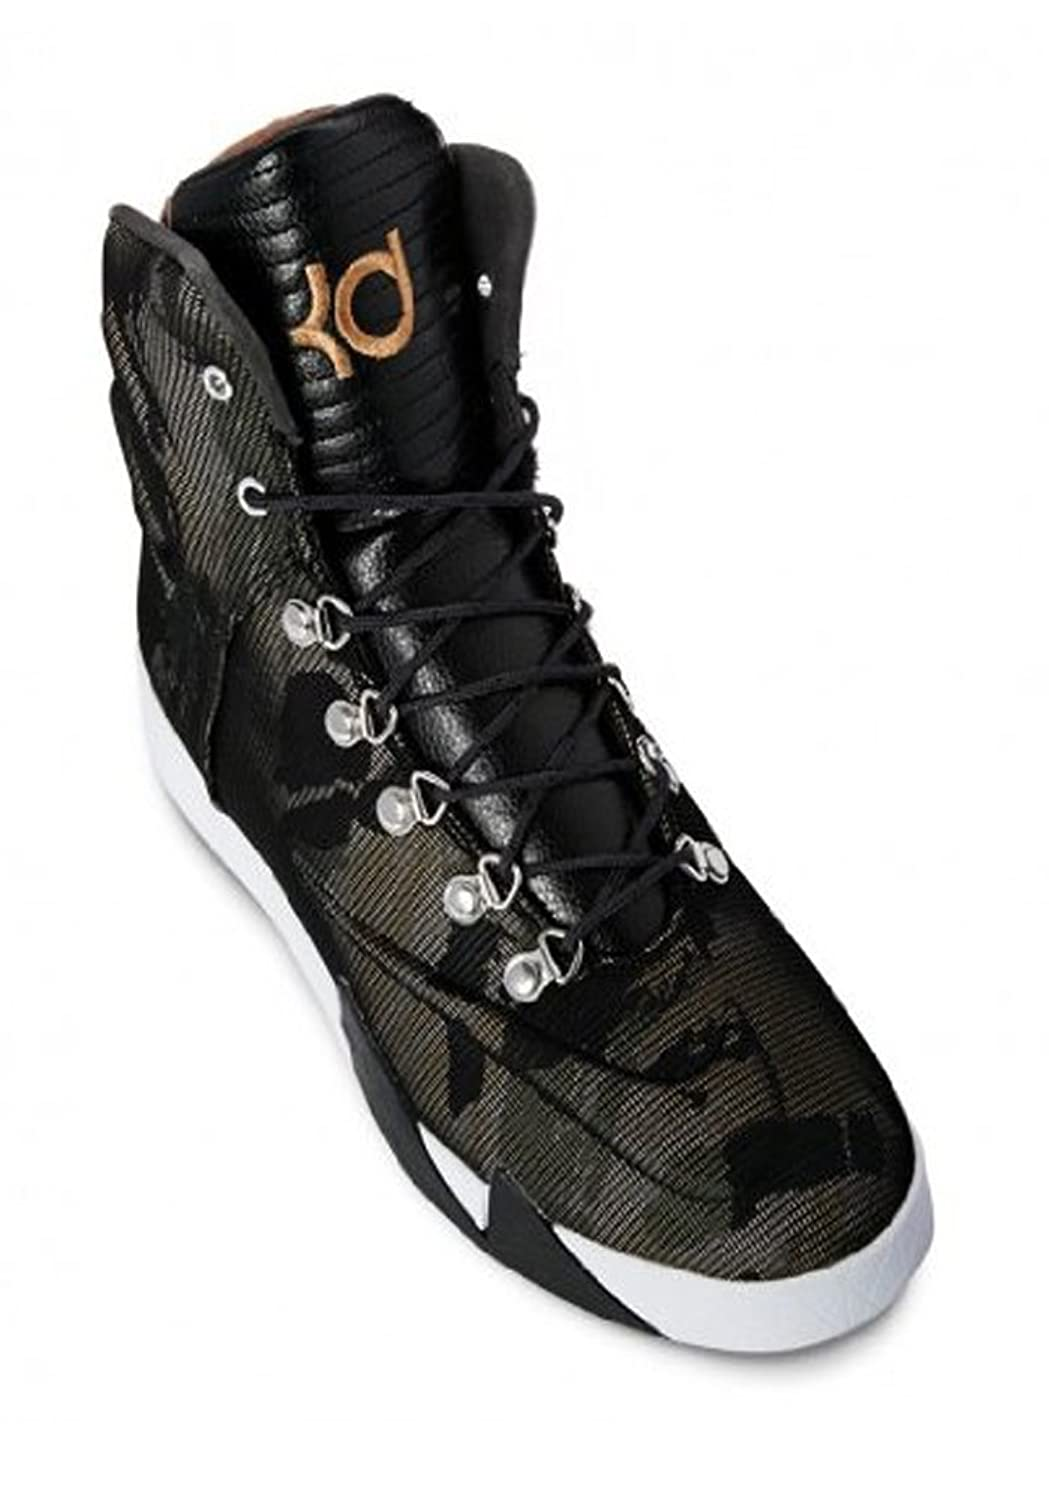 7444230e484 nike kd 6 nsw lifestyle reflective camo official images and release date